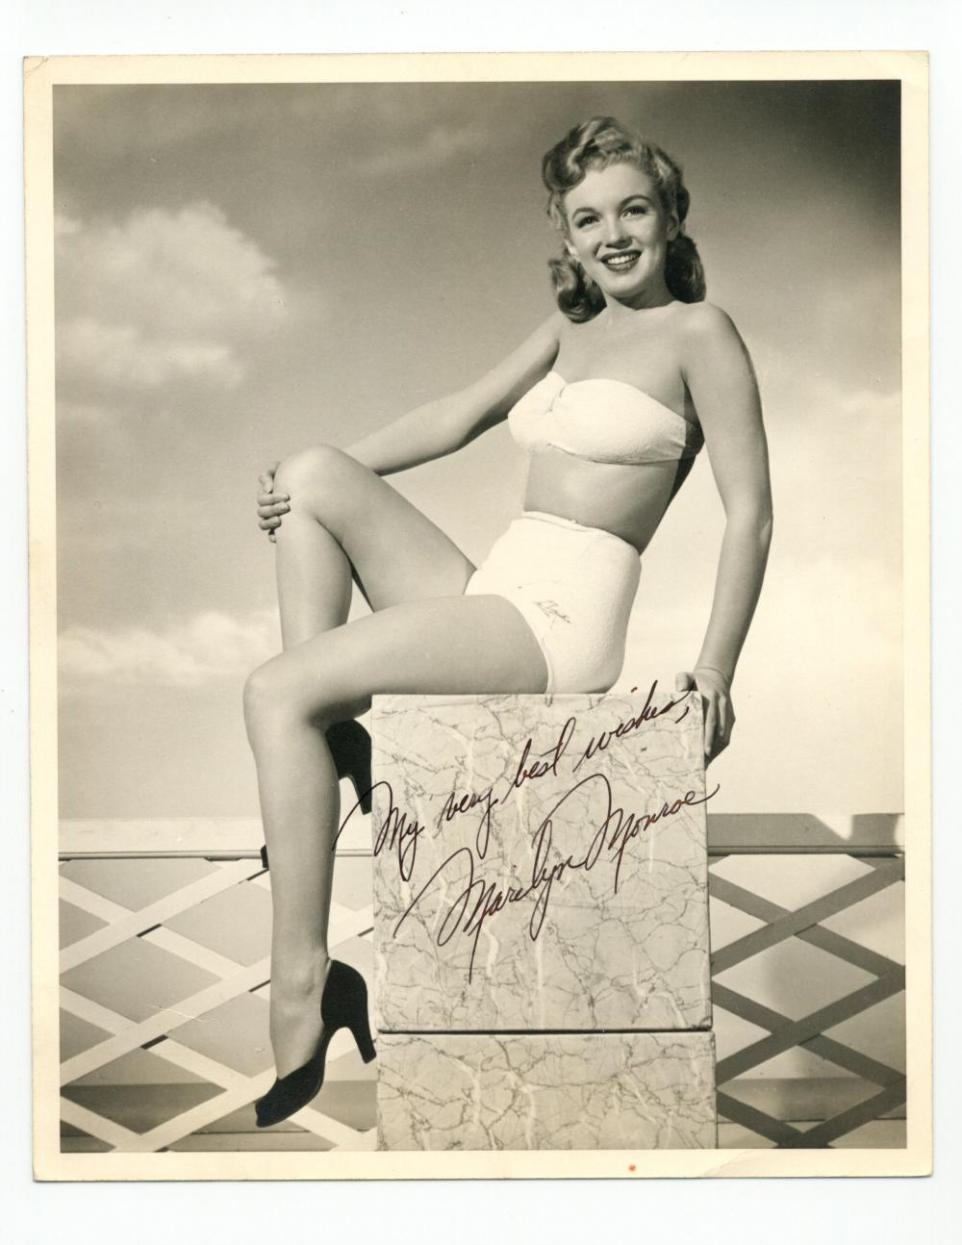 Early signed black and white photo of Marilyn Monroe, taken around 1947.